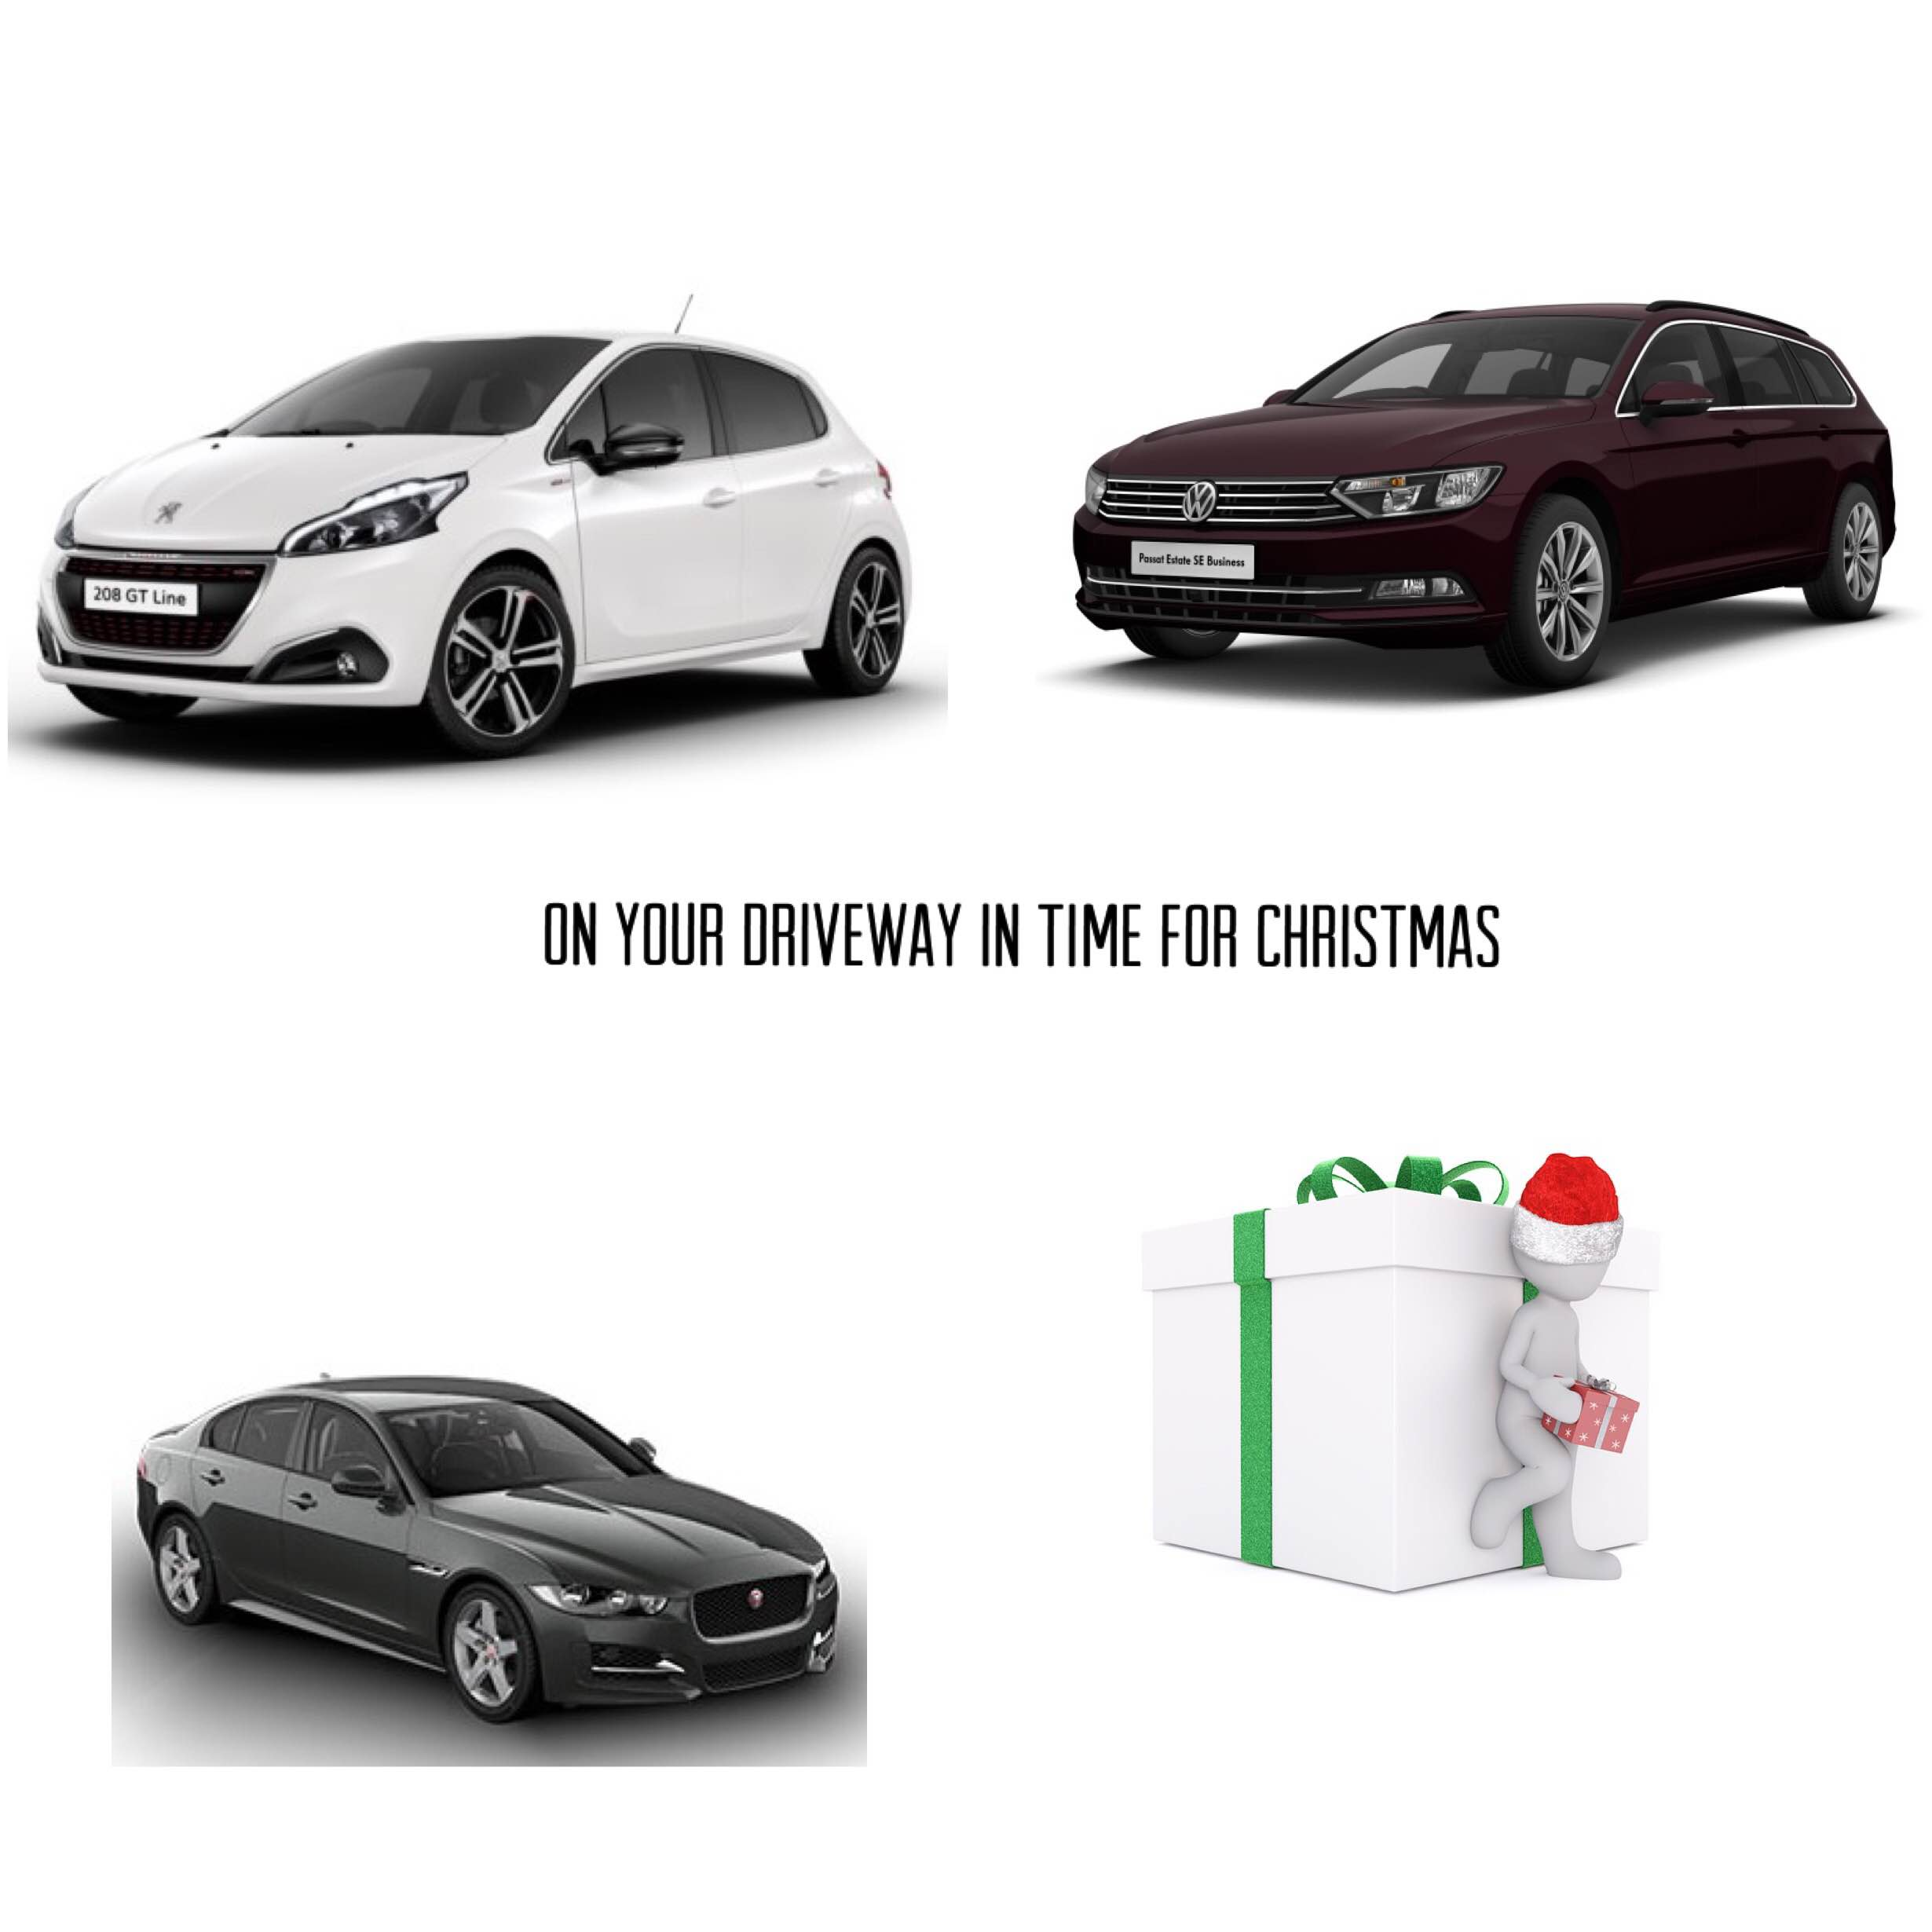 Order your new lease car today - get it for Christmas